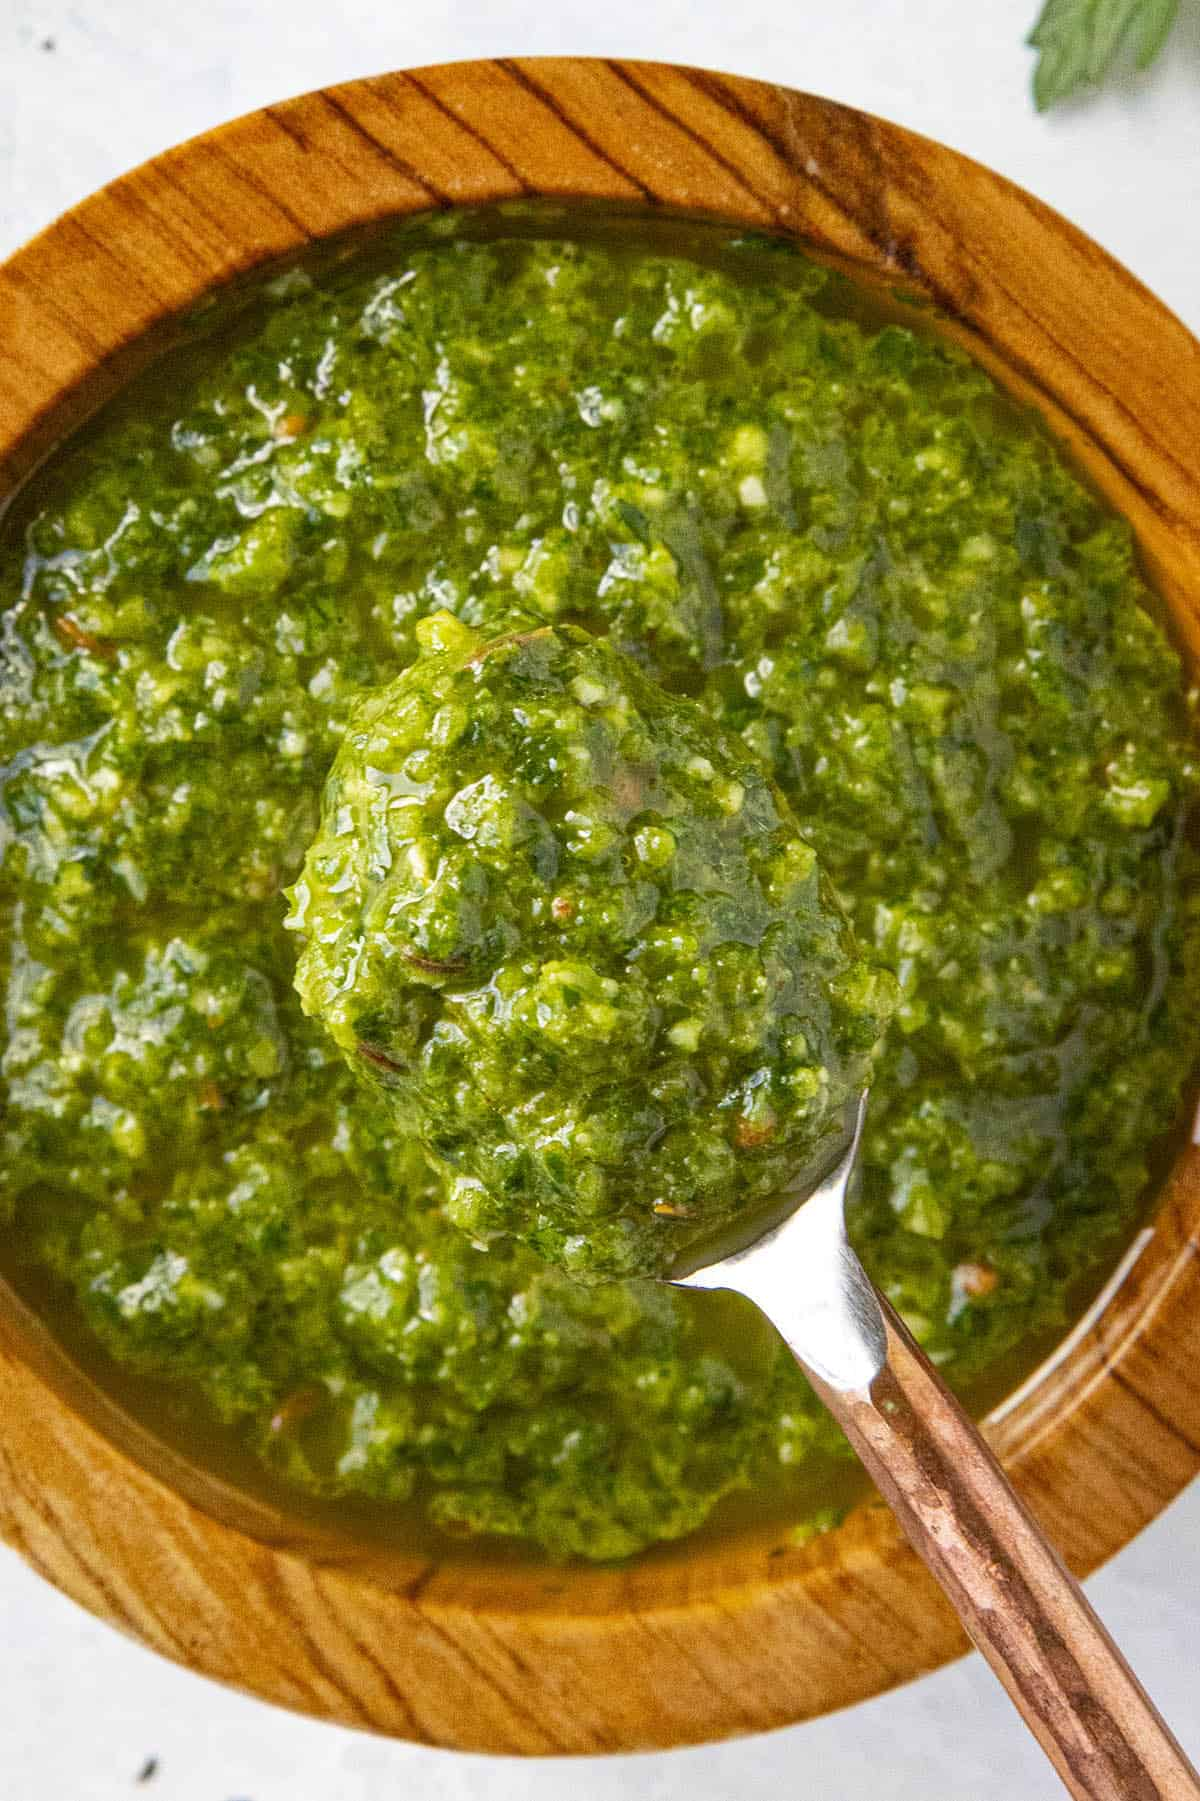 Close up of Green Harissa on a spoon, displaying the texture